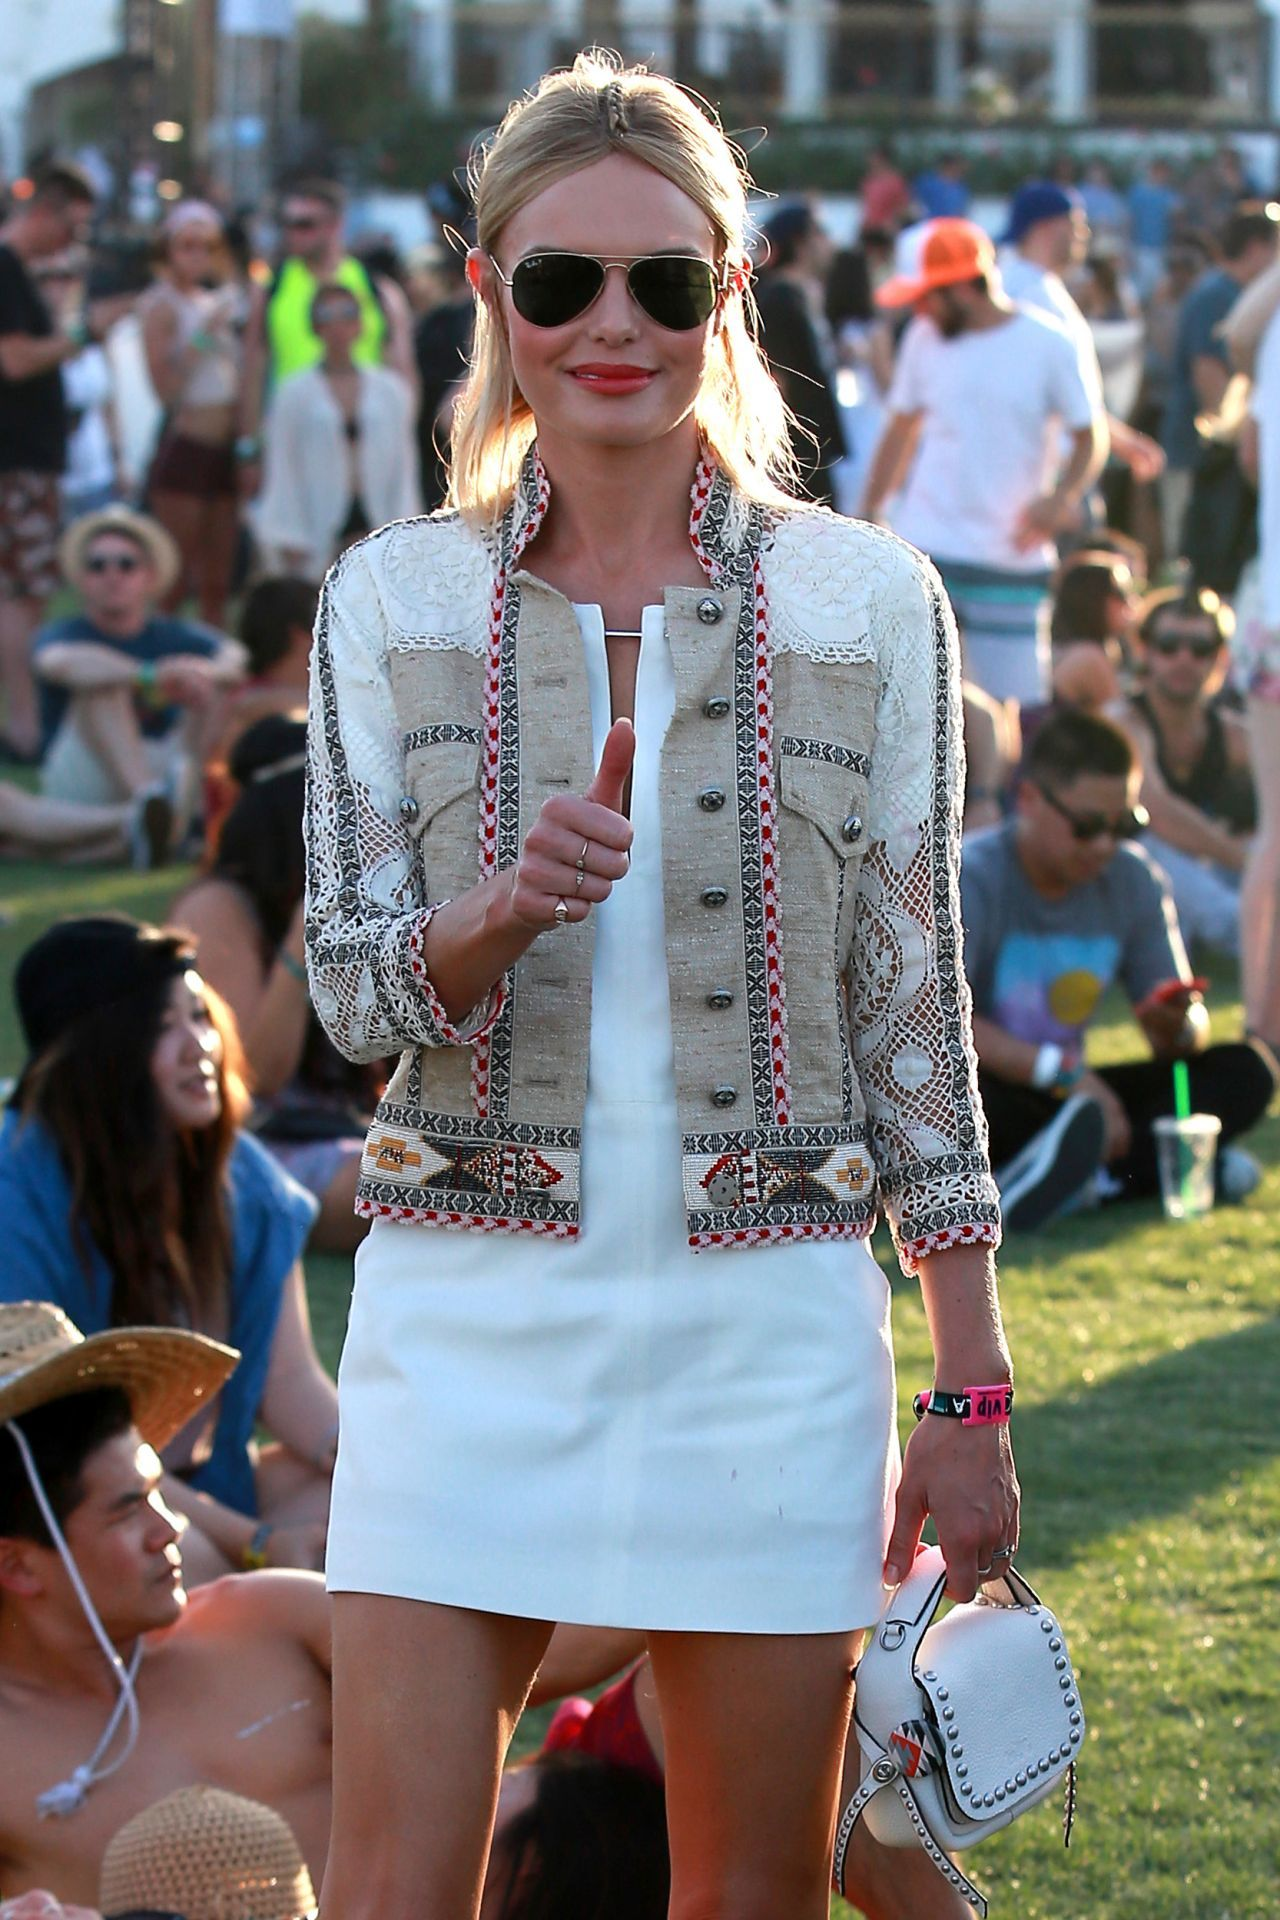 This week our holiday type is Festival! Whether it's Glastonbury, Secret Garden Party, Bestival or another of the many festivals this summer, make a statement and embrace the colours with bright and electric eyewear. Kate Bosworth - 2015 Celebrity Photos -  a Coachella Music Festival Day 2 Empire Polo Grounds Indio #celebrityphotos